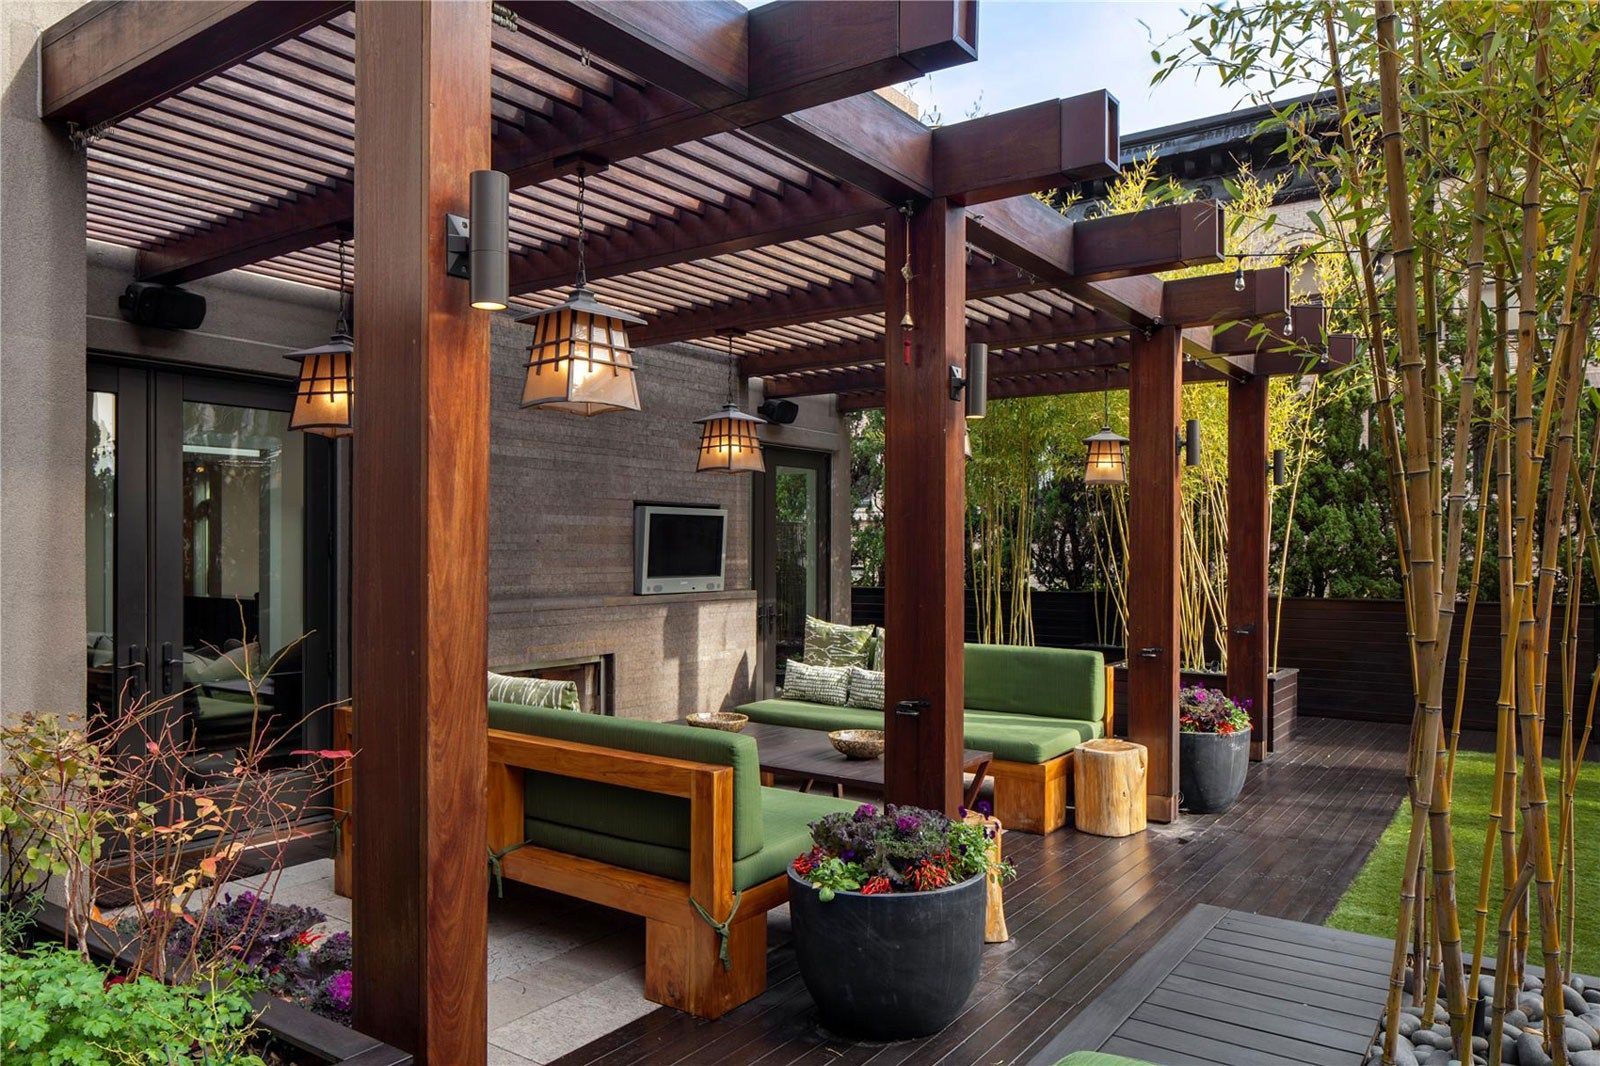 17 best images about patio on pinterest covered patios decks and backyards - Patio Deck Design Ideas